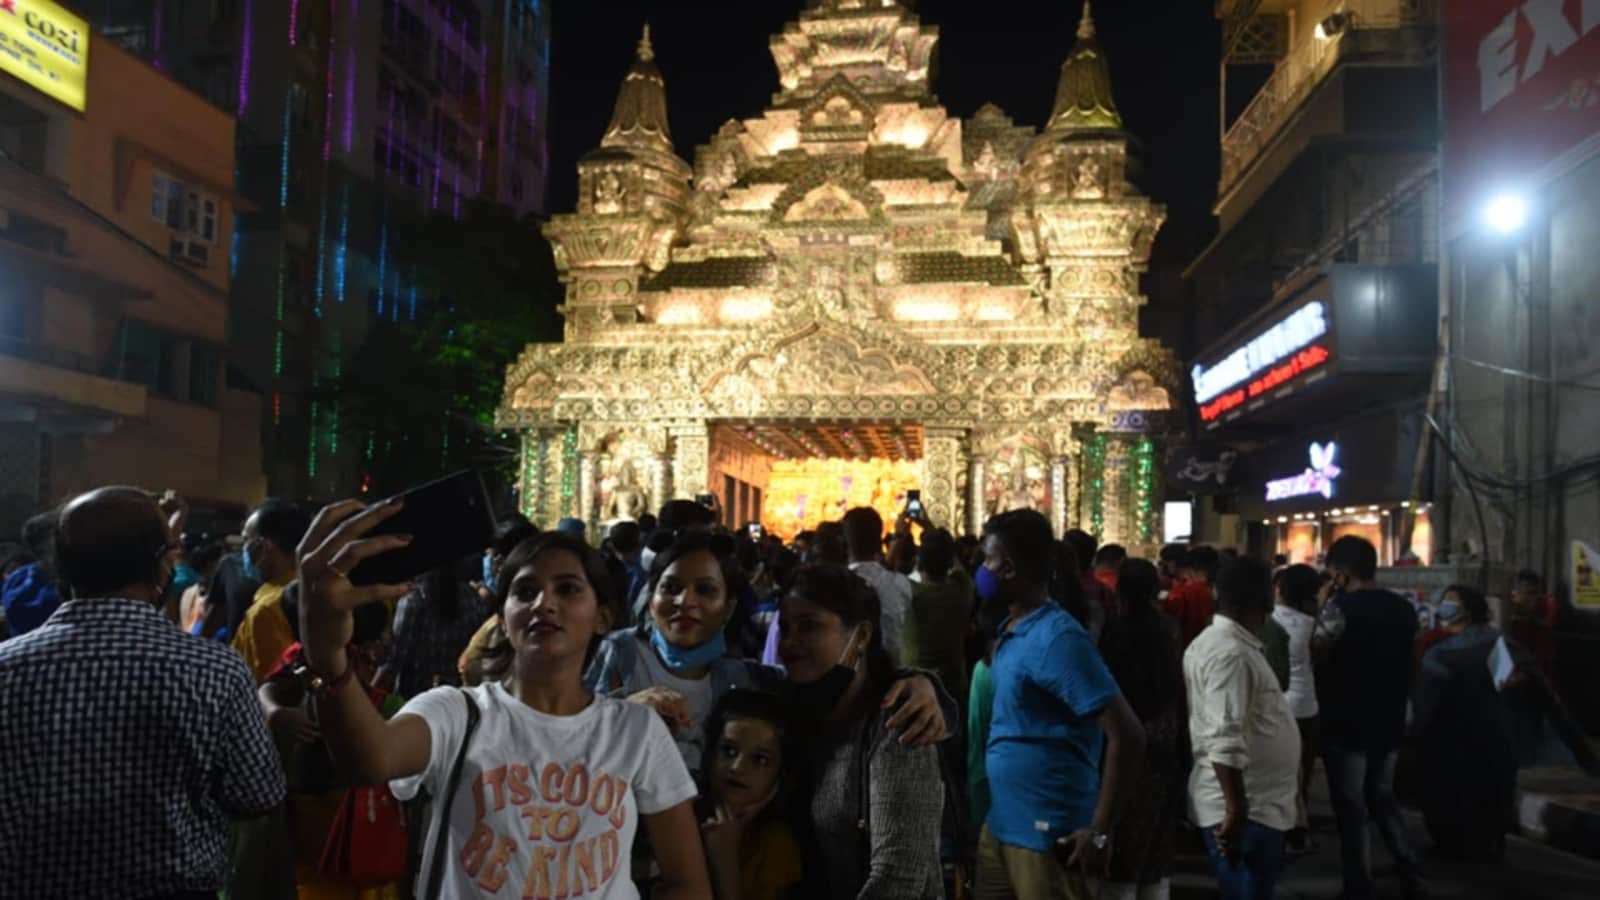 Bengal doctors fear fresh Covid-19 outbreak as millions hit streets during Durga puja